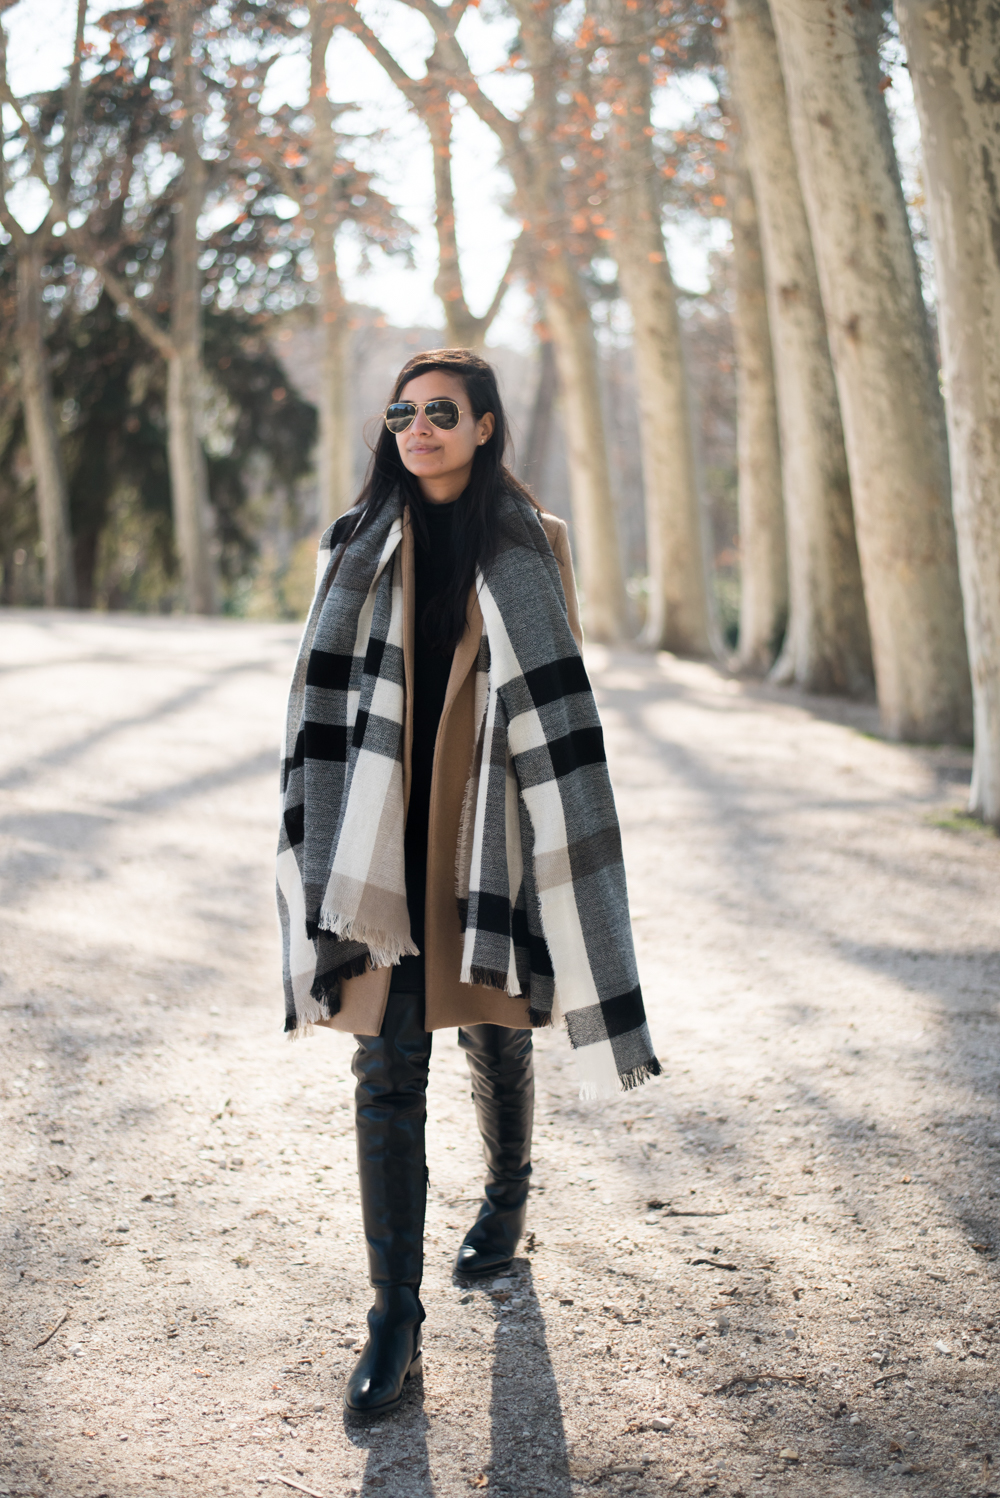 From Madrid With Love - One Last Winter Outfit